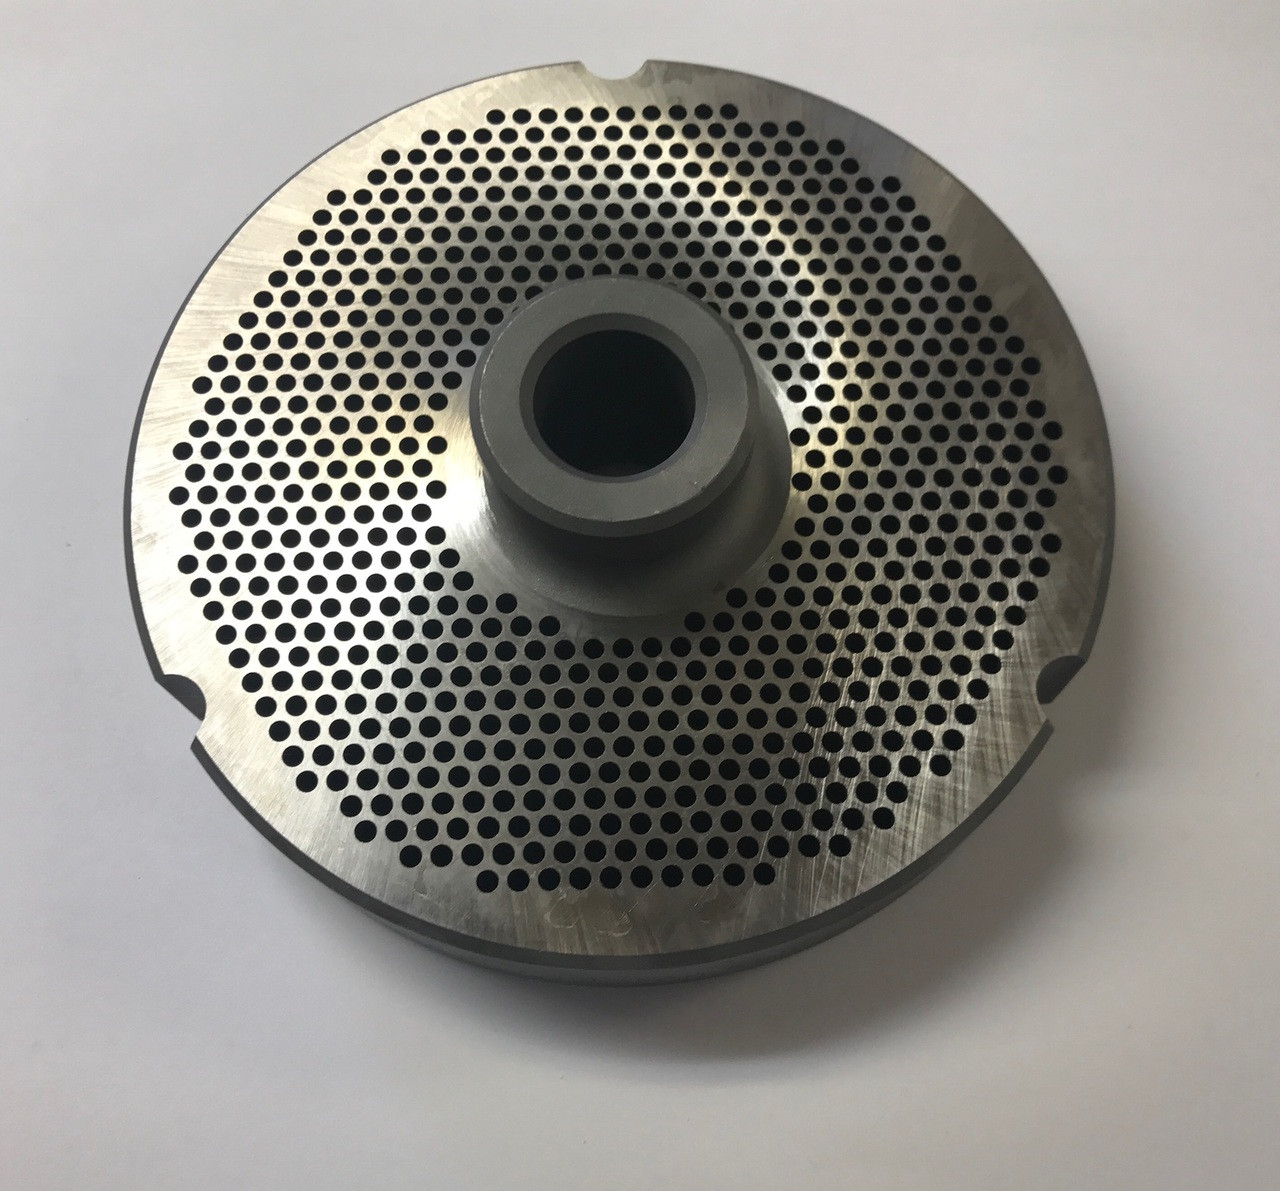 """#52 Speco Meat Grinder Plate with 7/64'' Holes - """"Hub Plate"""" - 103403"""